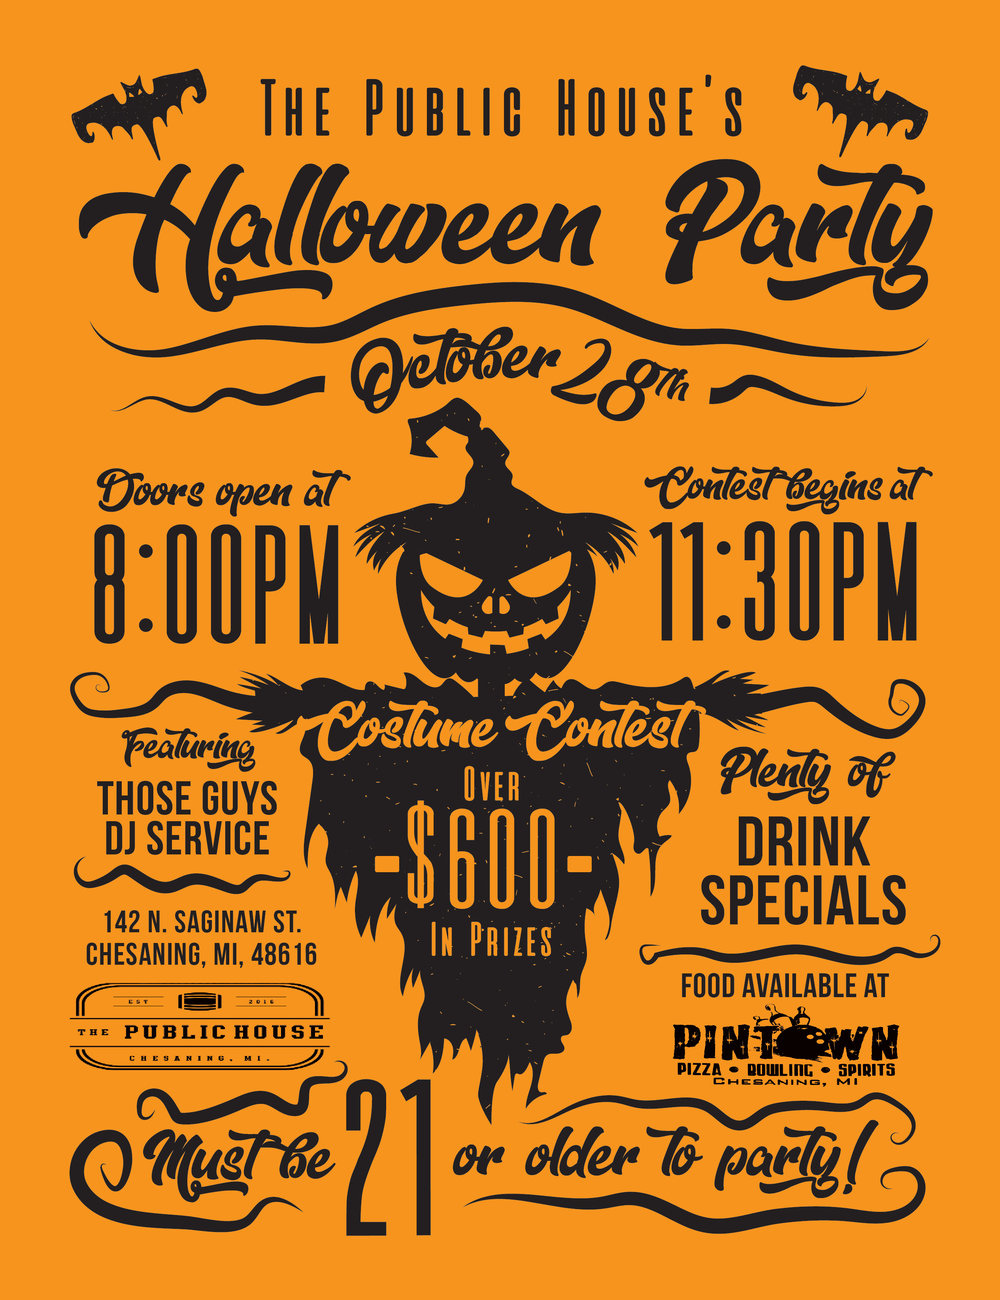 Halloween Party Flyer_2018.jpg